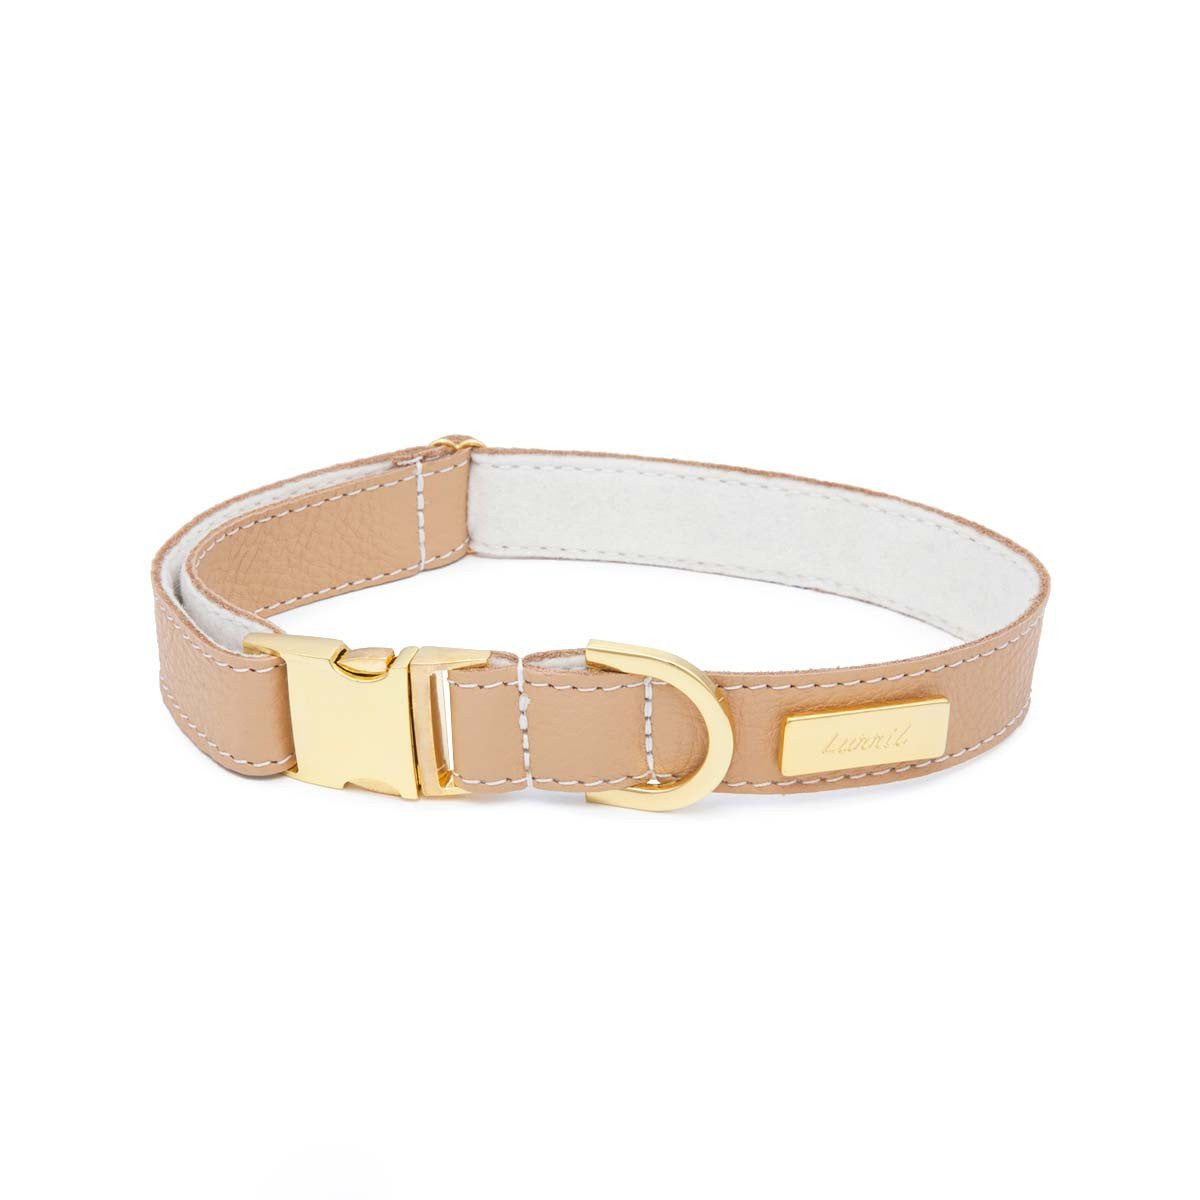 Tan Soft Leather Dog Collar with Wool Felt Lining